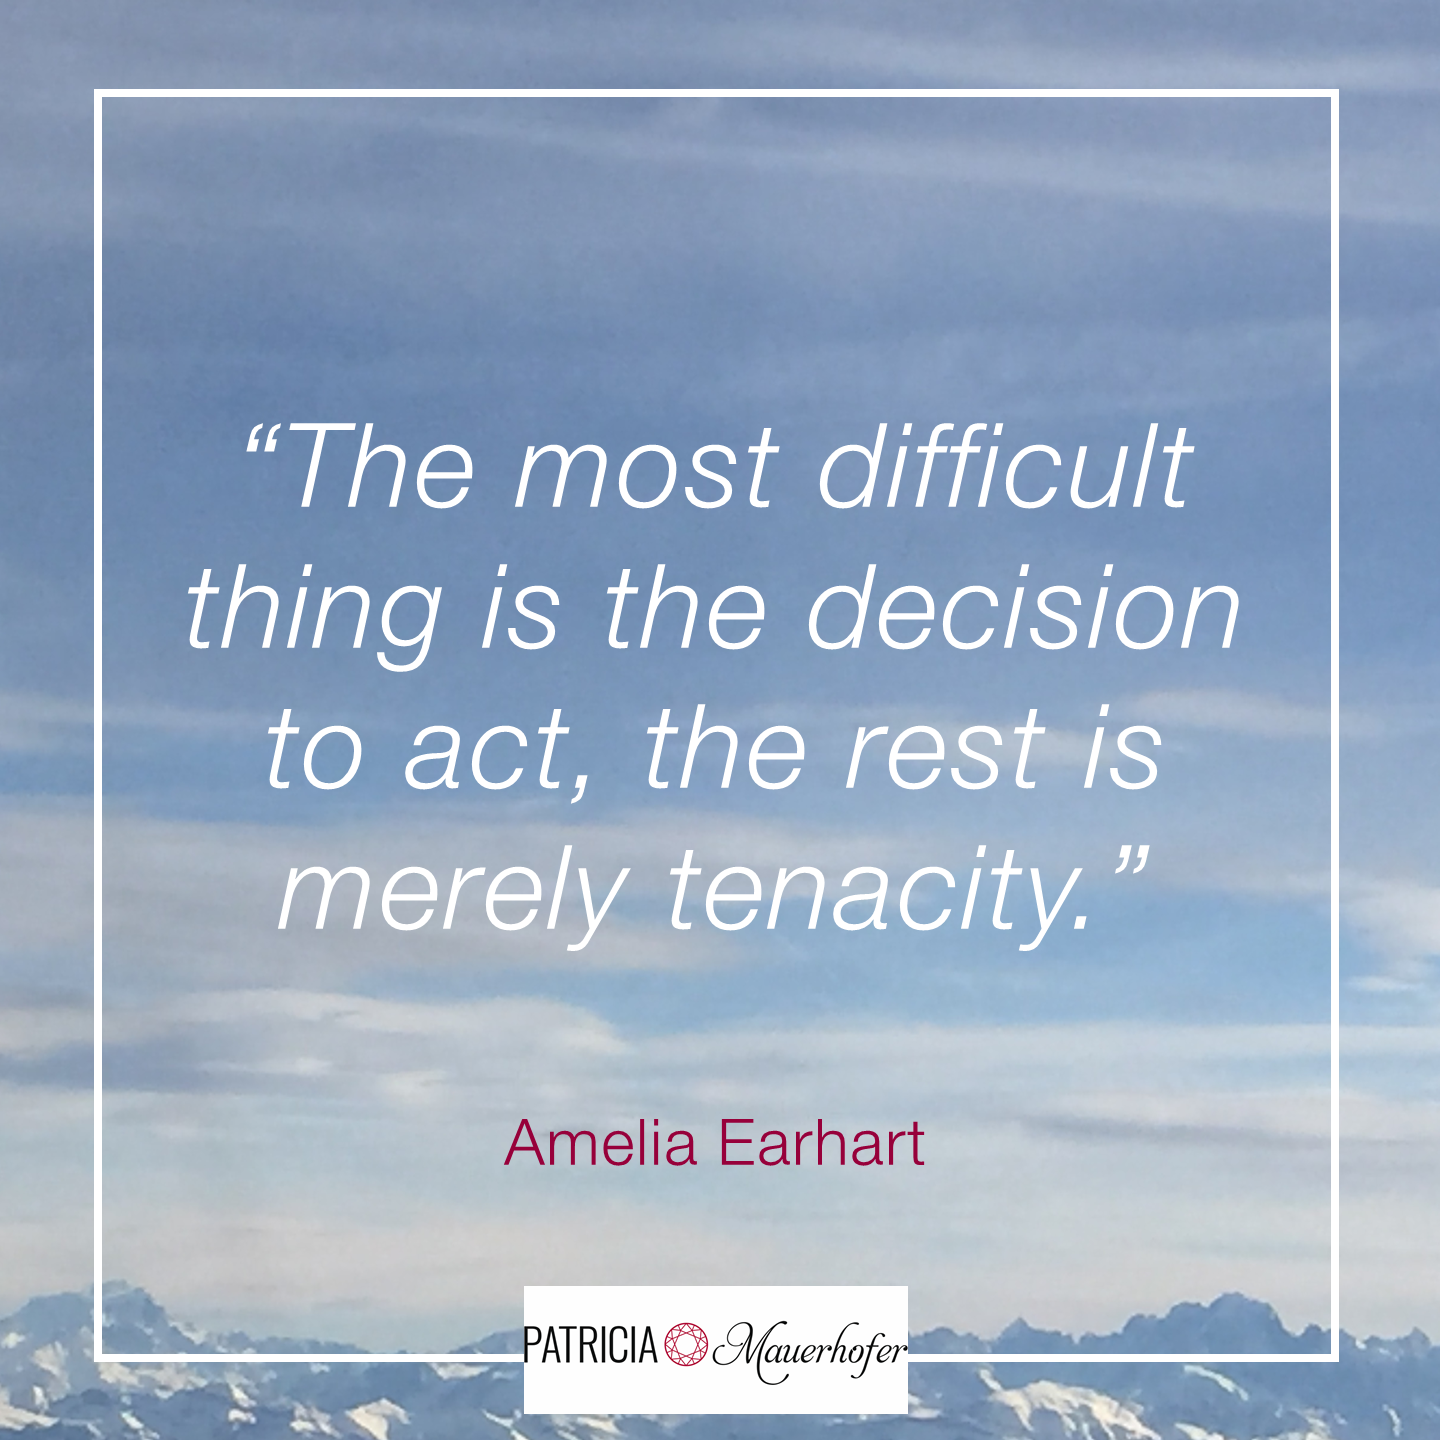 Having it all - earhart quote